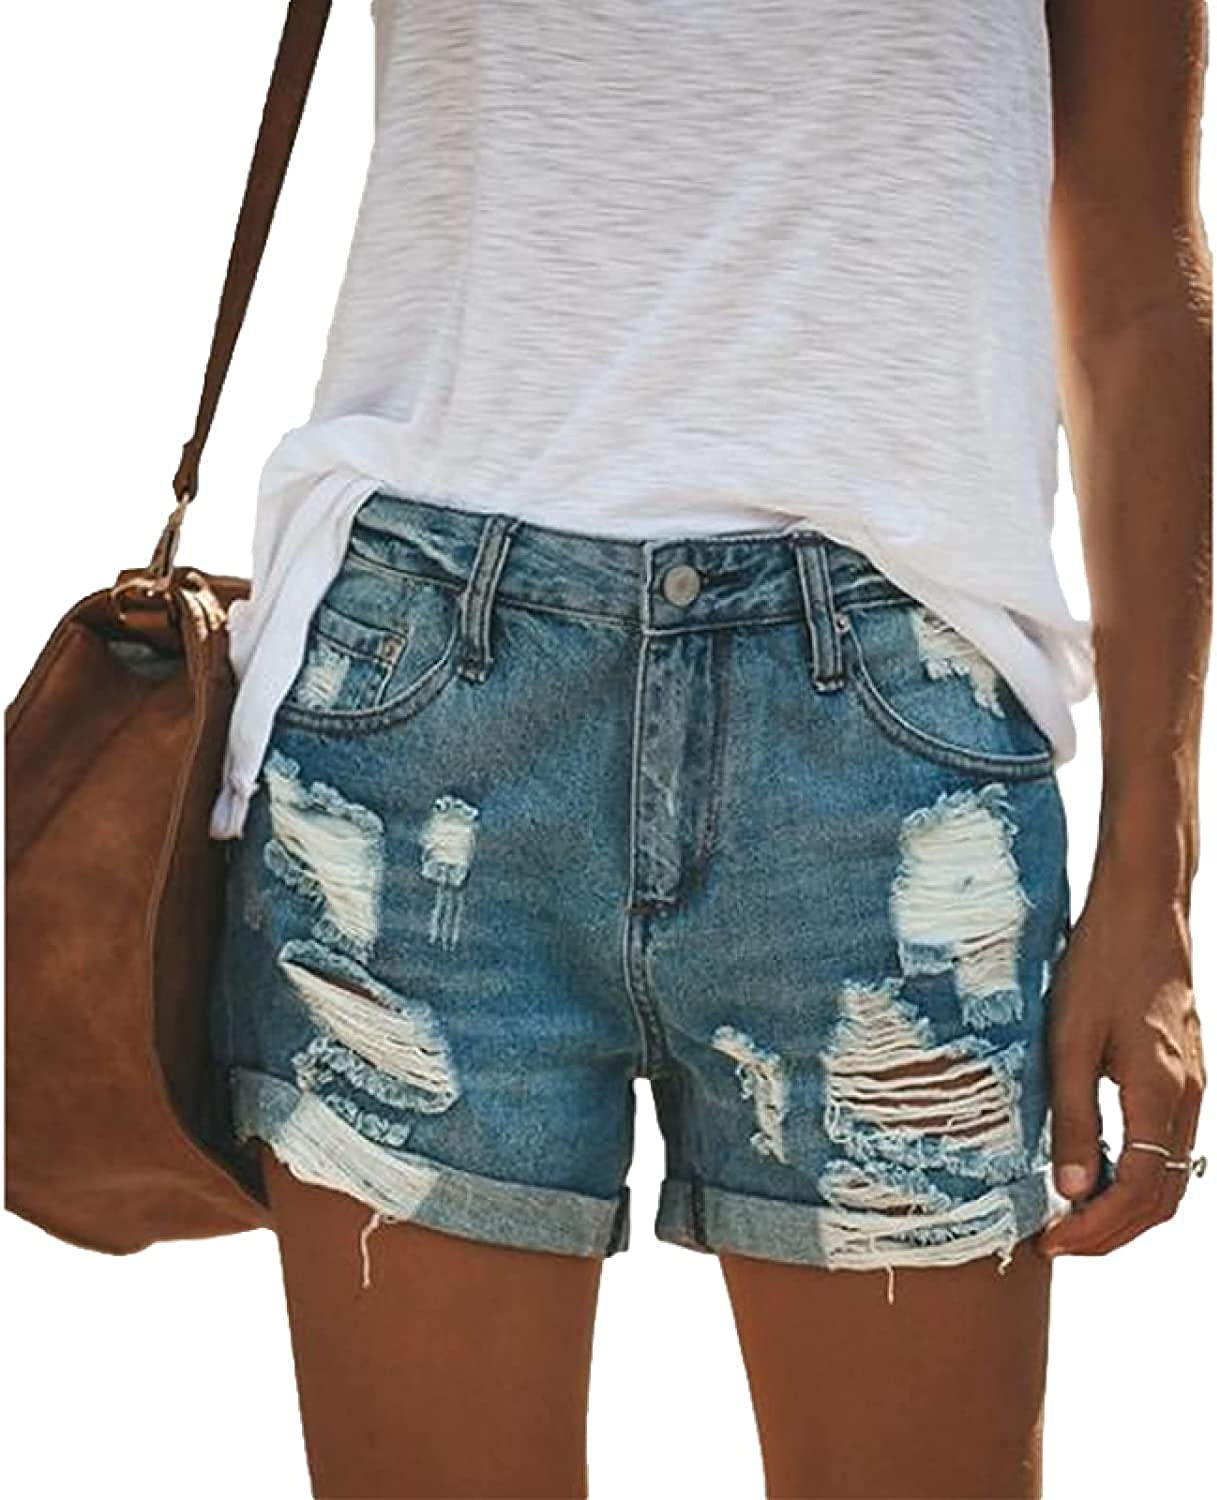 Women's Denim Shorts Fashion Ripped Holes Washed Distressed Casual All-Match